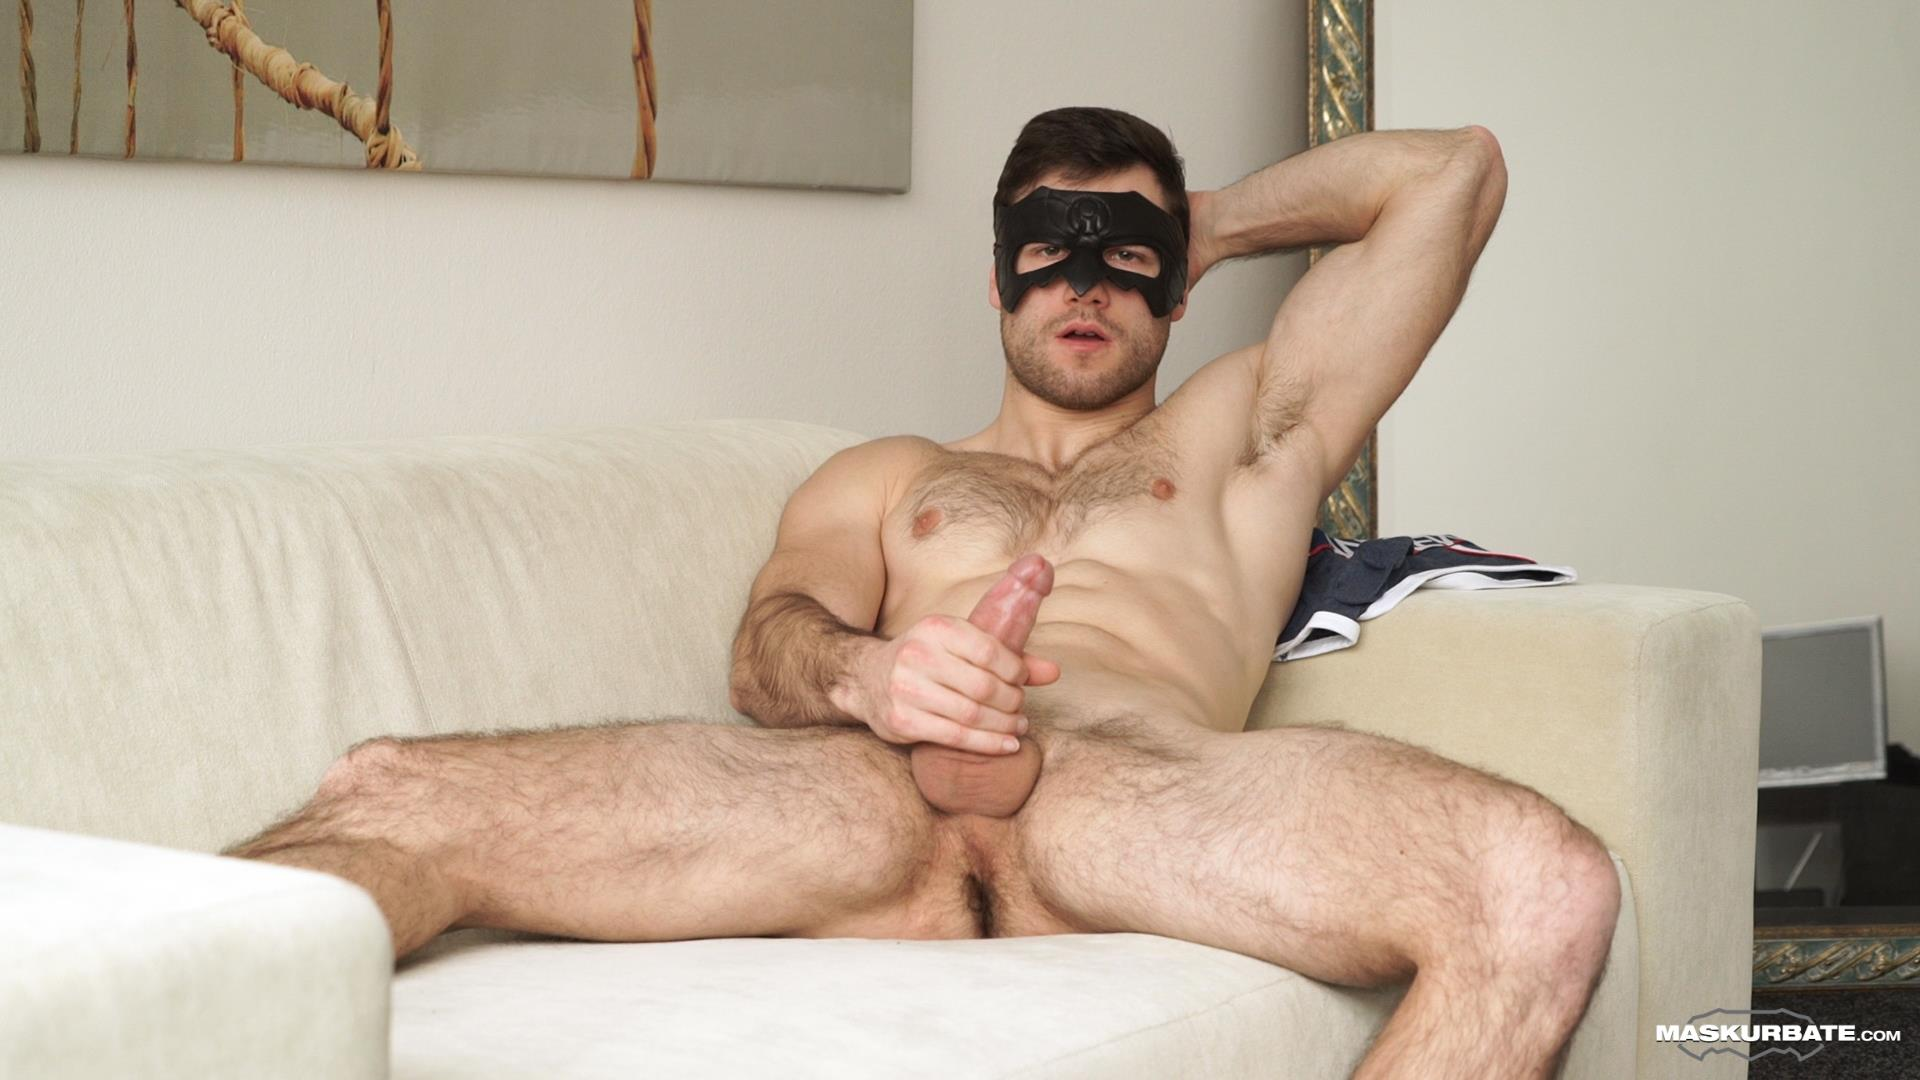 Maskurbate-Sam-Cuthan-Straight-Naked-Hairy-Muscle-Guy-Jerk-off-07 Straight Masked Hairy Muscle Hunk Strokes His Big Uncut Cock